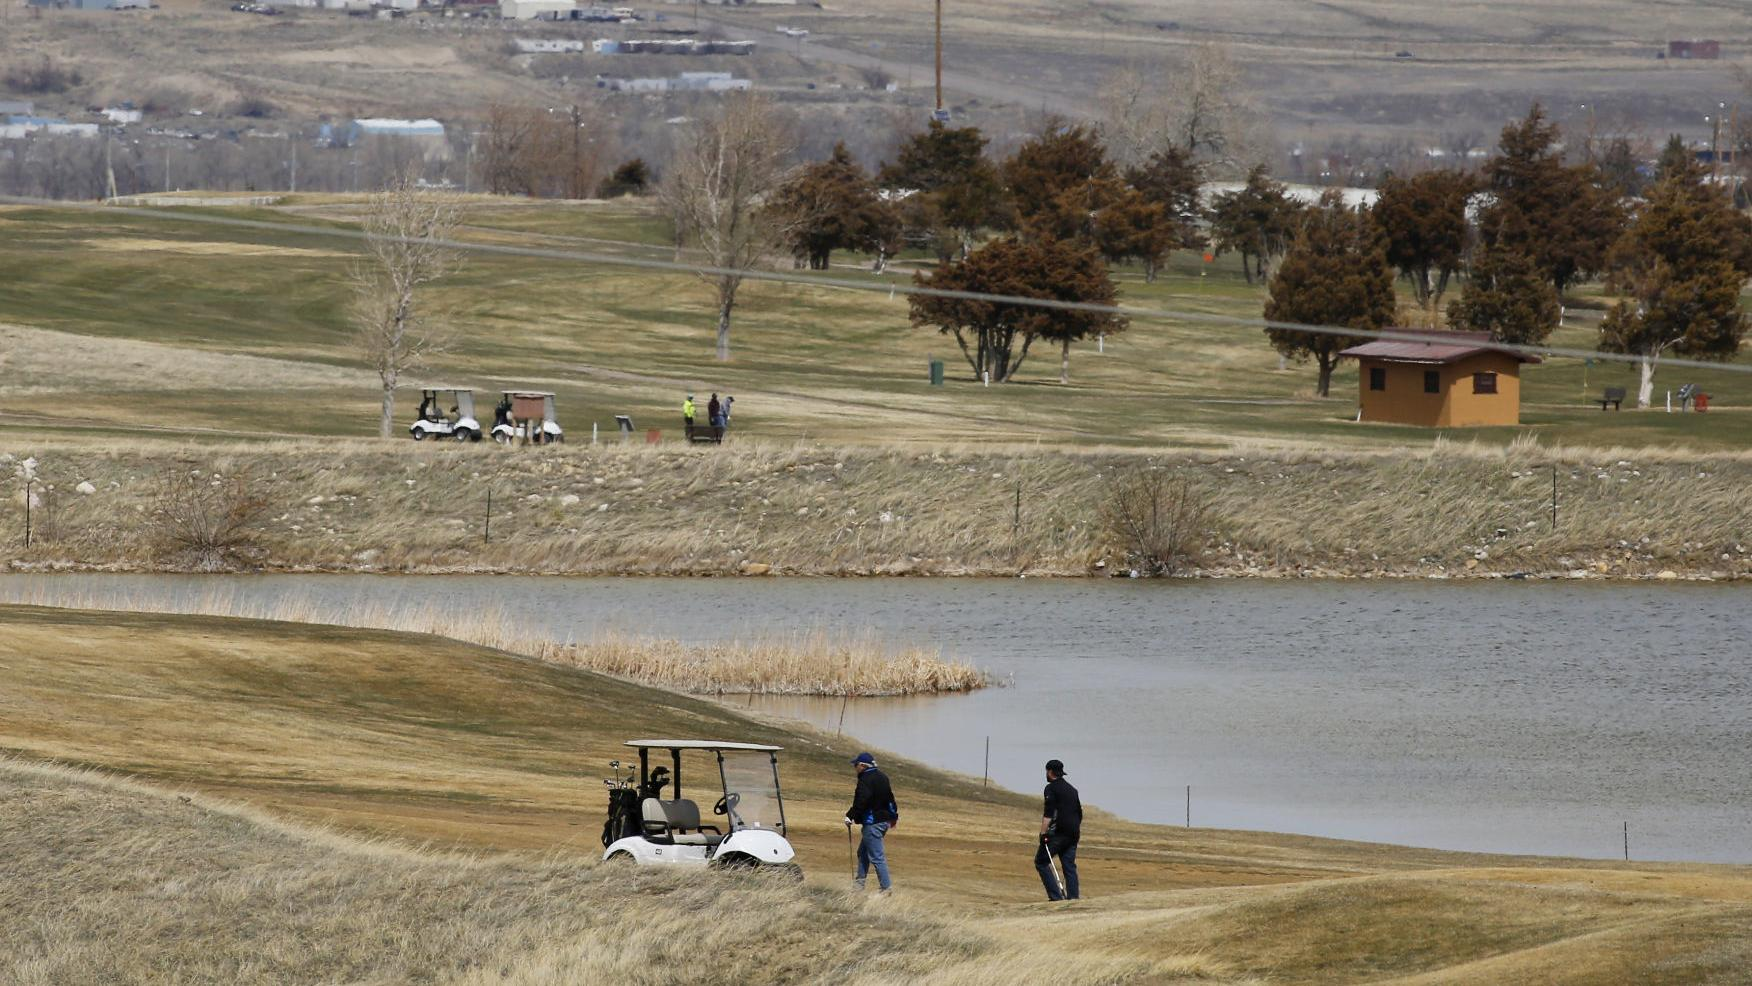 Council sets cost recovery goals for Casper parks and recreation centers; votes to repeal ethical code